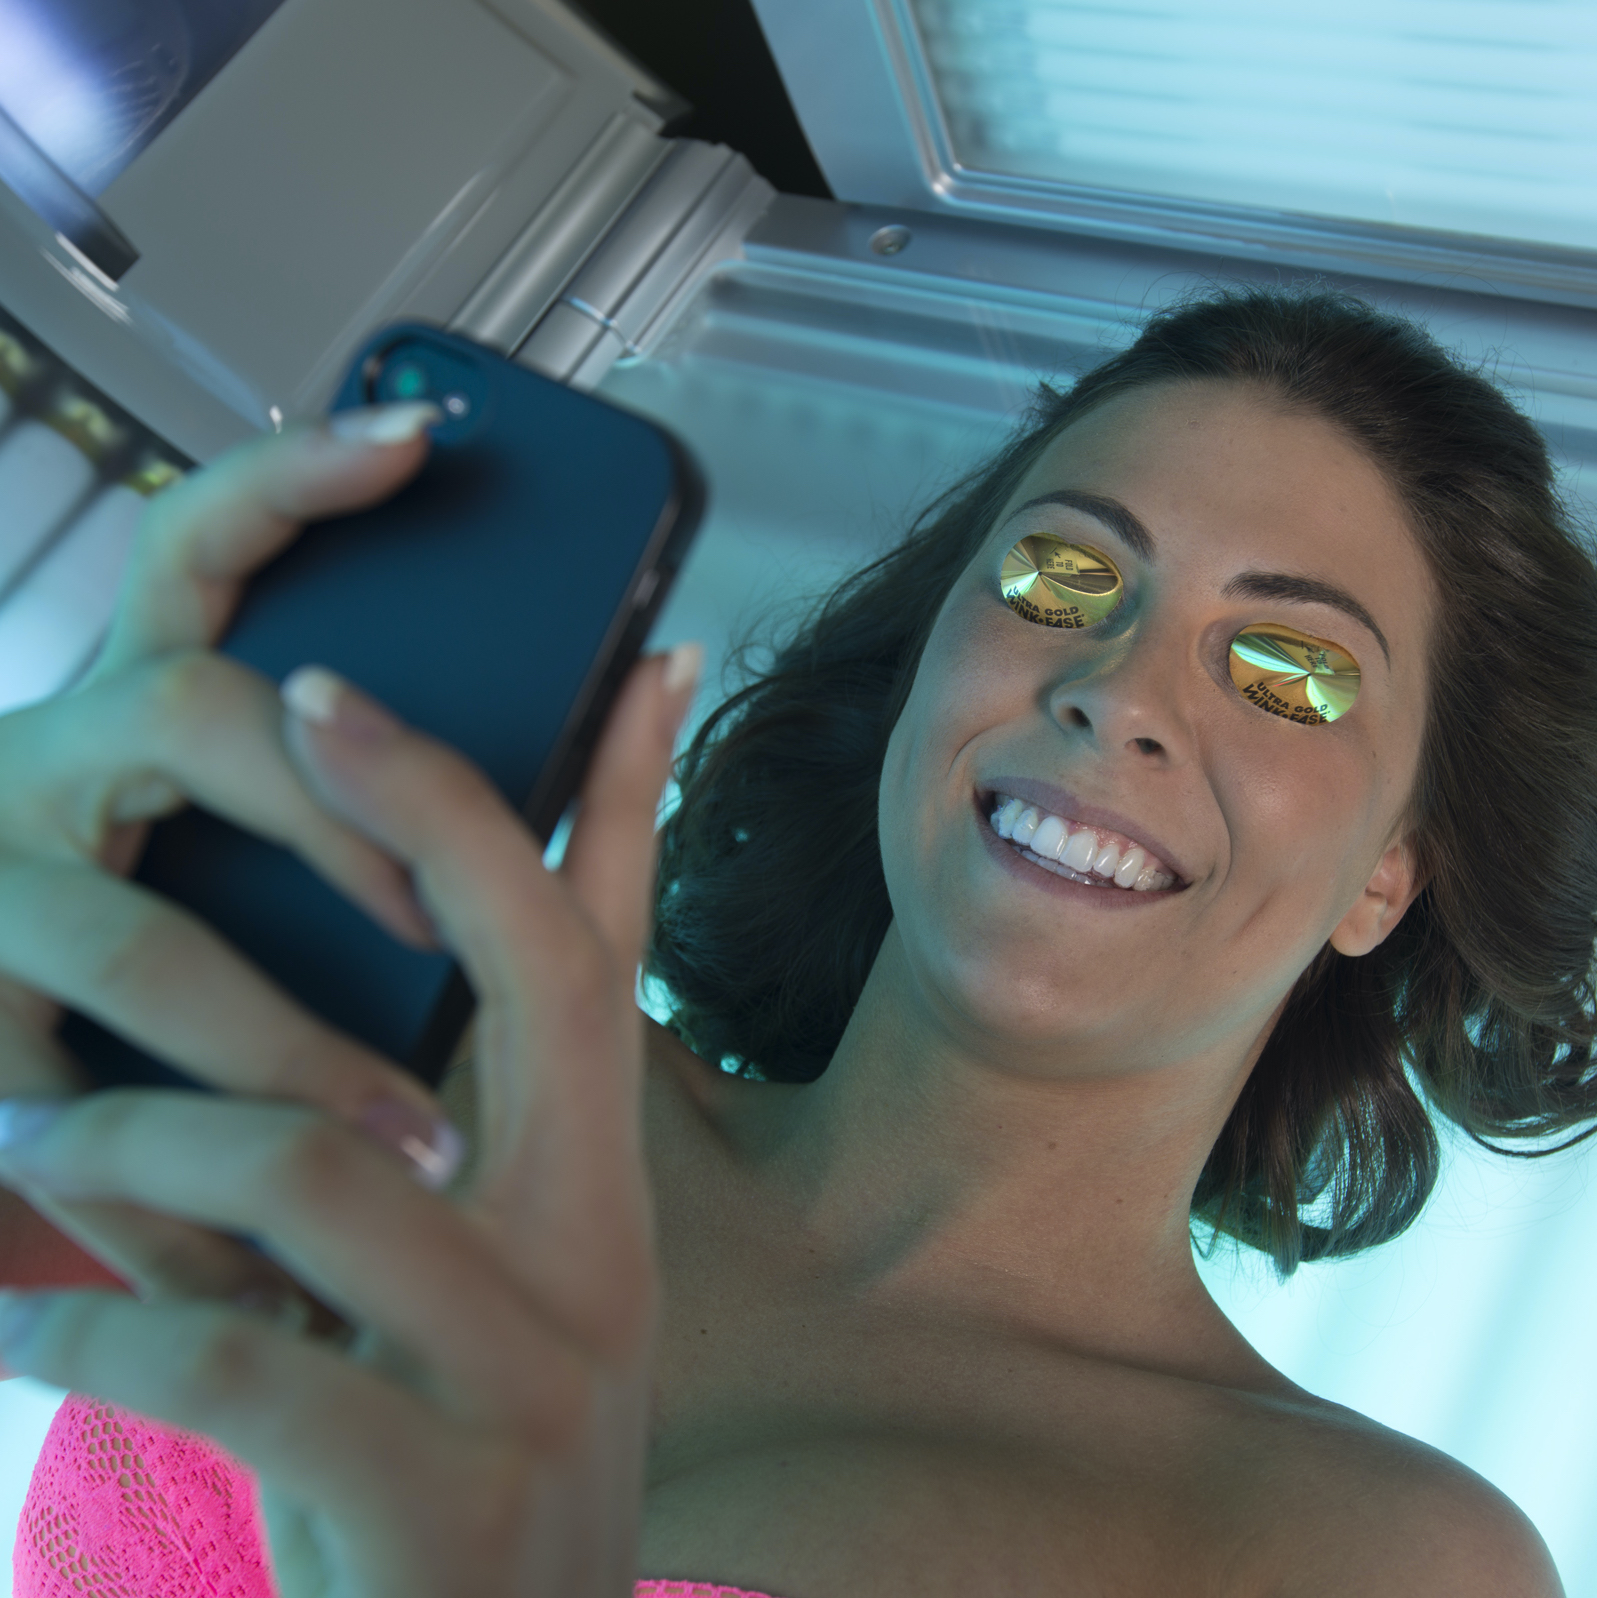 salon's social media winkease tanning salon